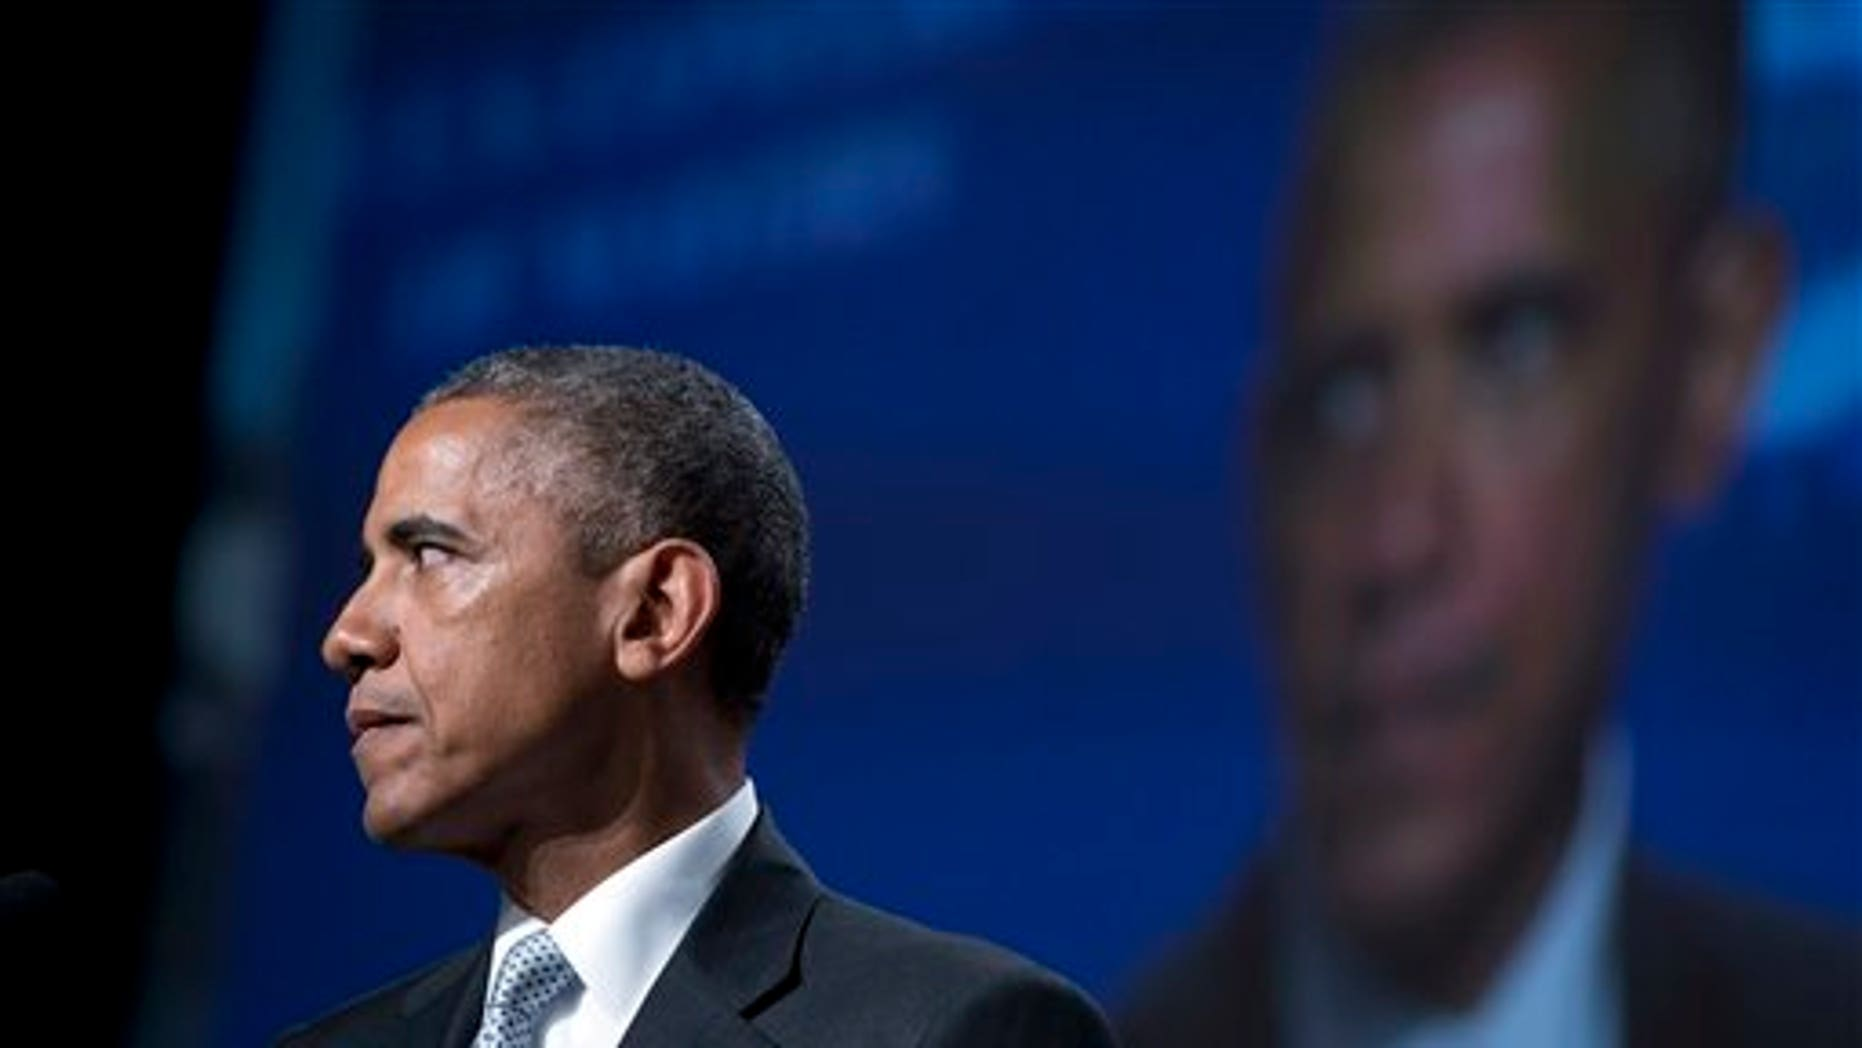 June 19: President Obama pauses as he speaks about gun violence at the Annual Meeting of the U.S. Conference of Mayors in San Francisco. (AP Photo/Carolyn Kaster)